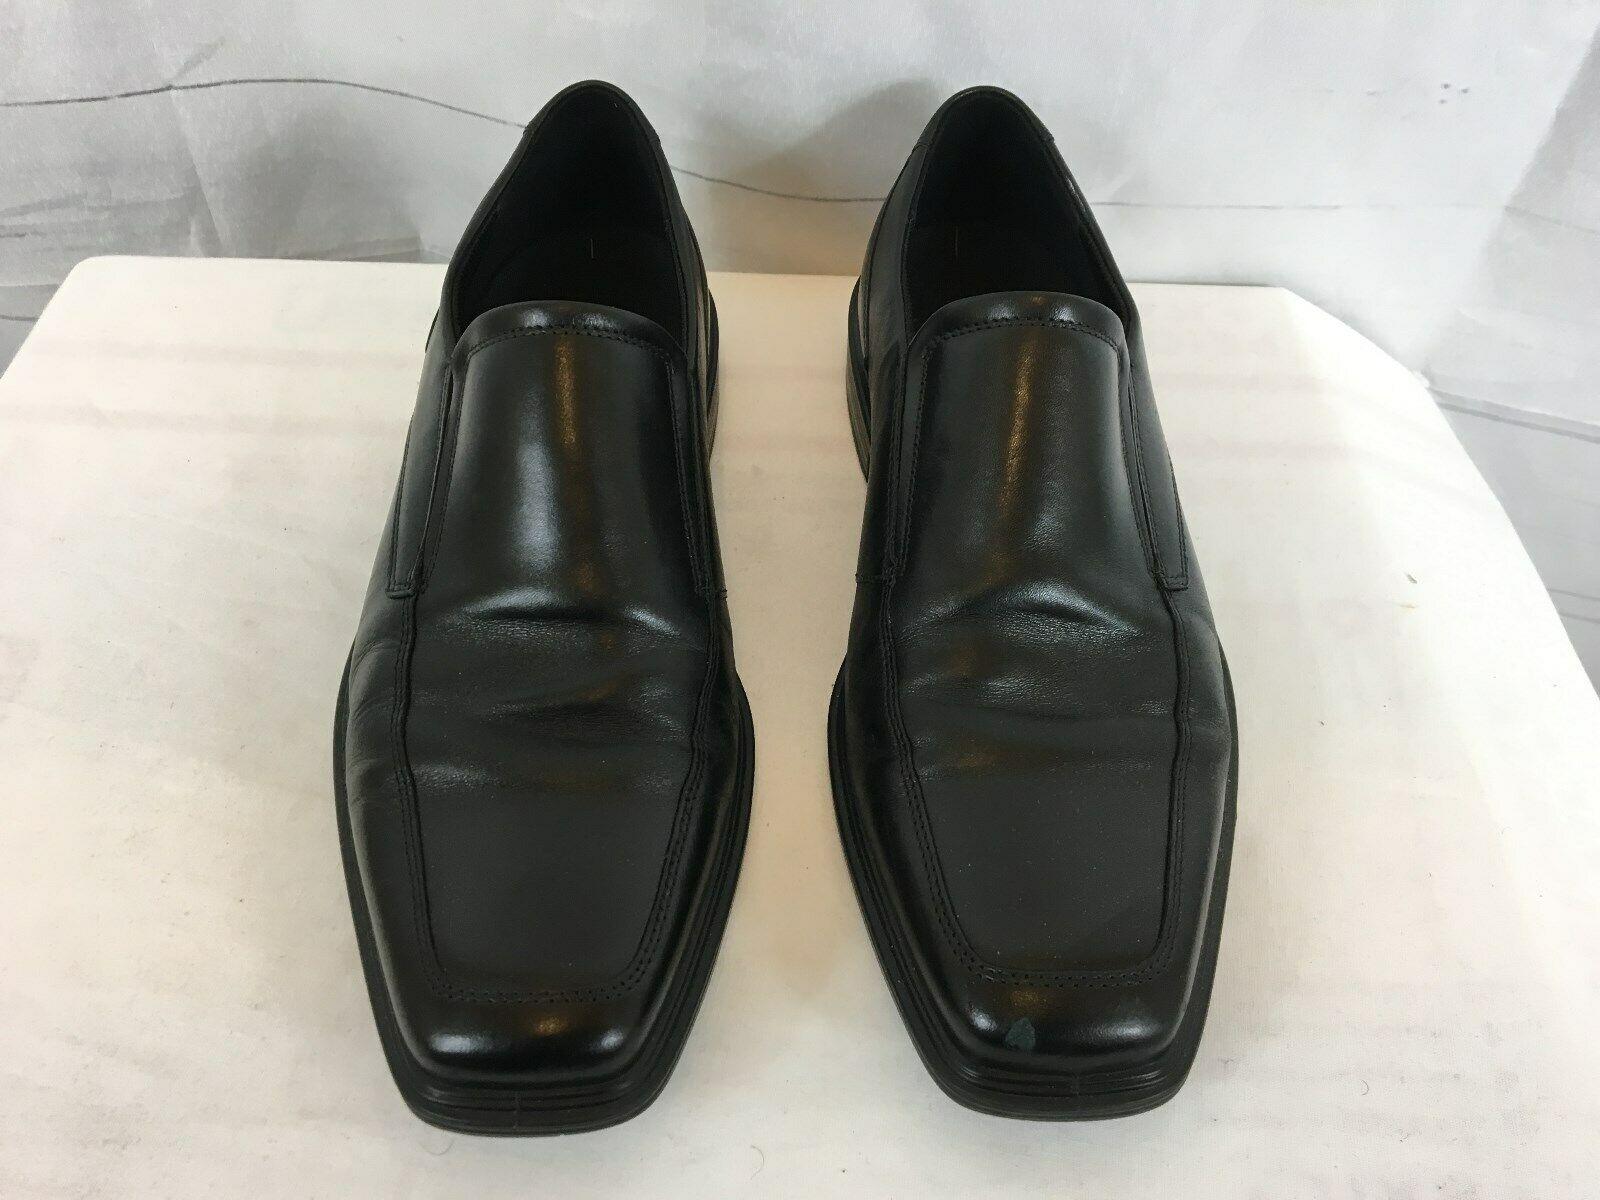 ECCO Danish Design loafer men sz EU 44, black